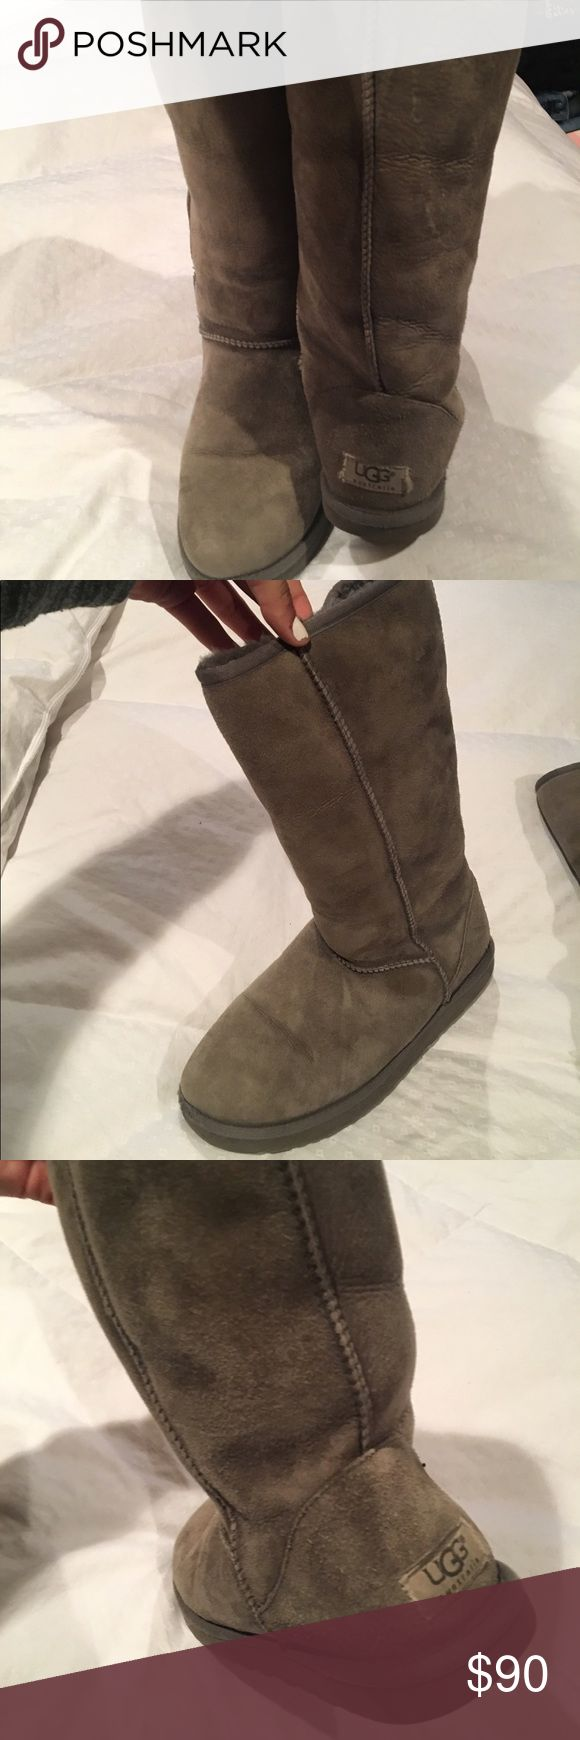 New UGG classic 11. tall grey uggs Very cozy comfy and warm! UGG Shoes Winter & Rain Boots